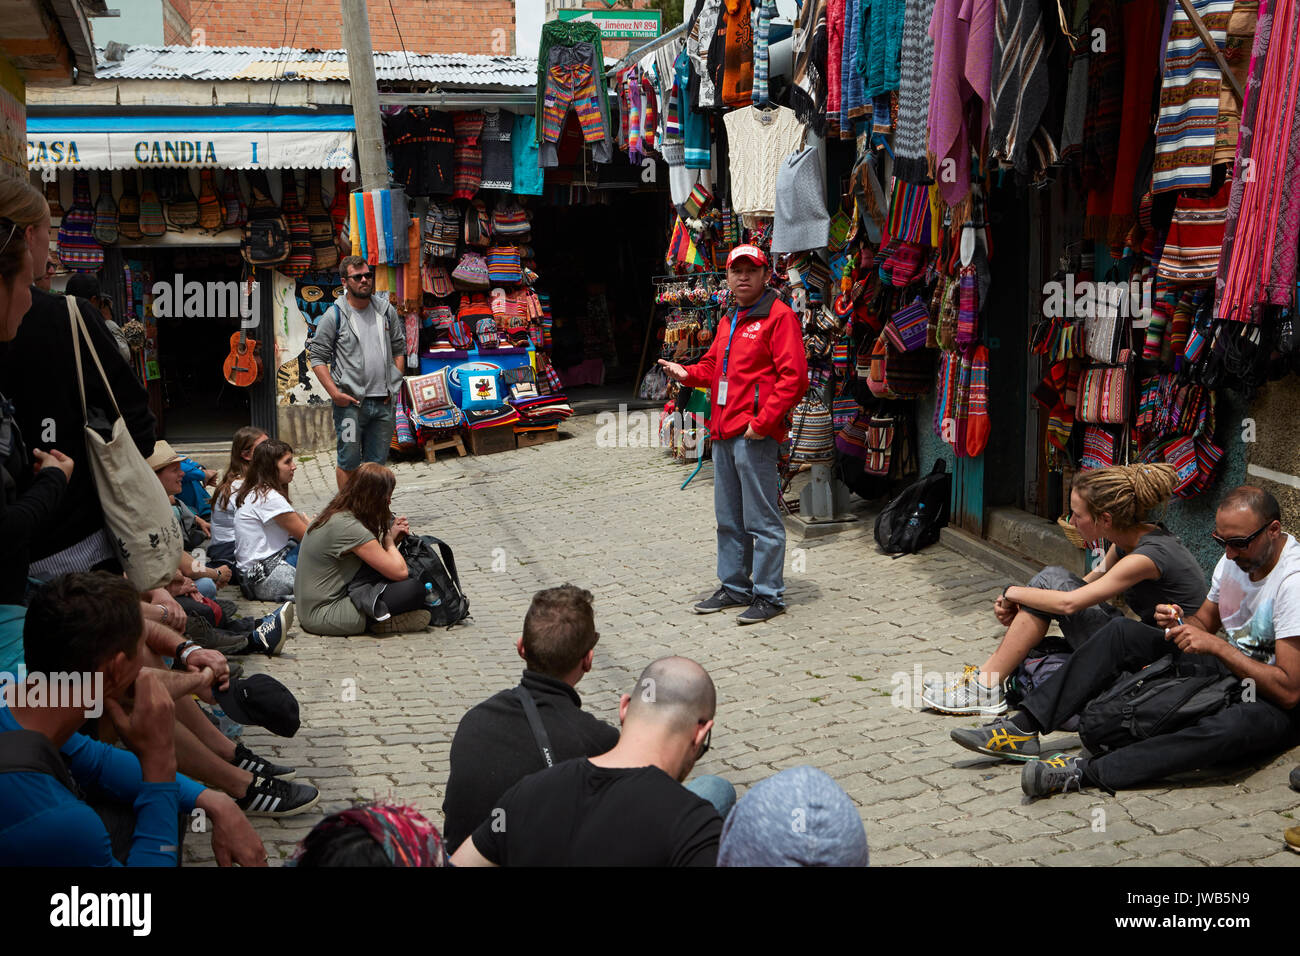 Red Cap walking tour, Witches Market, La Paz, Bolivia, South America - Stock Image